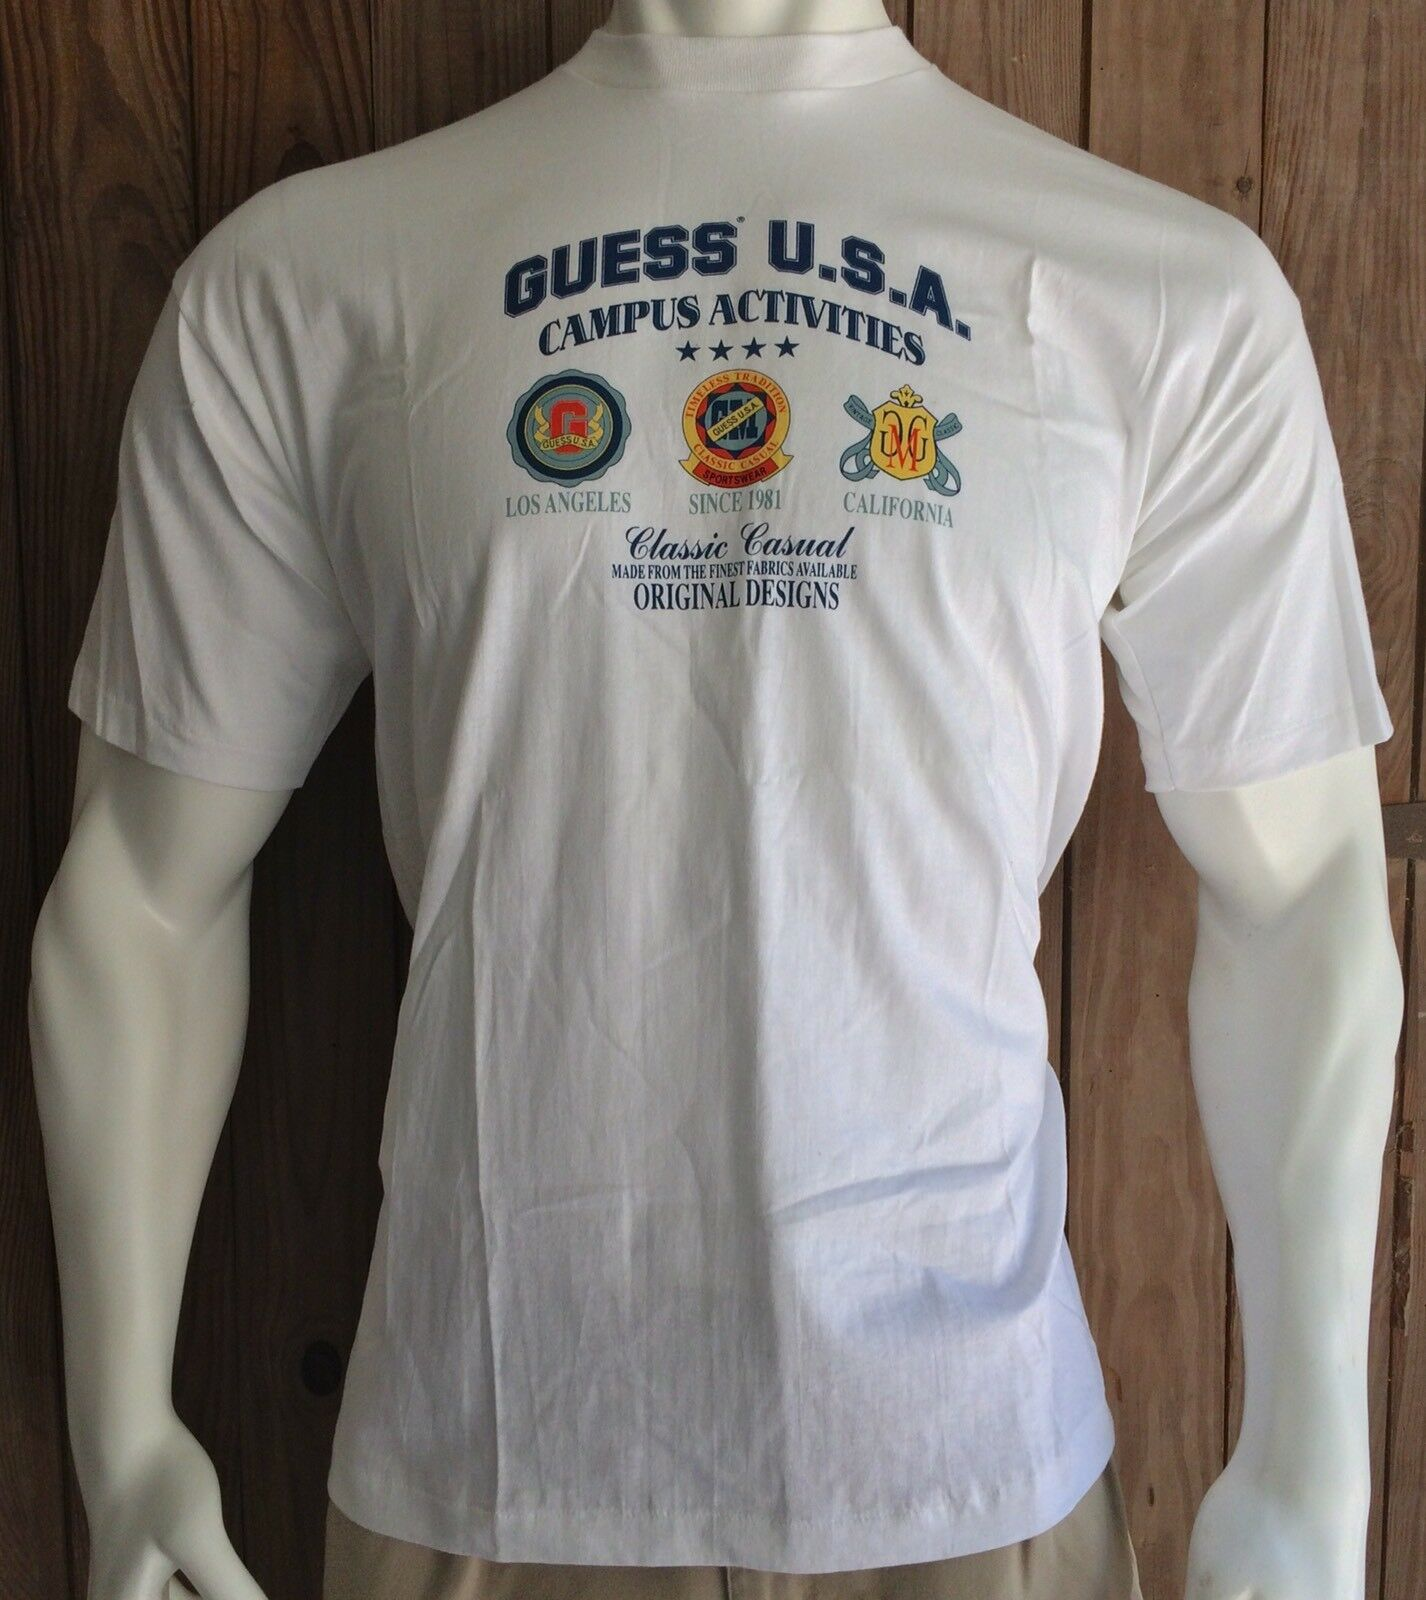 NWT Guess Jeans USA Men's Large Tshirt Vintage 90's Spell Out White New w  Tags